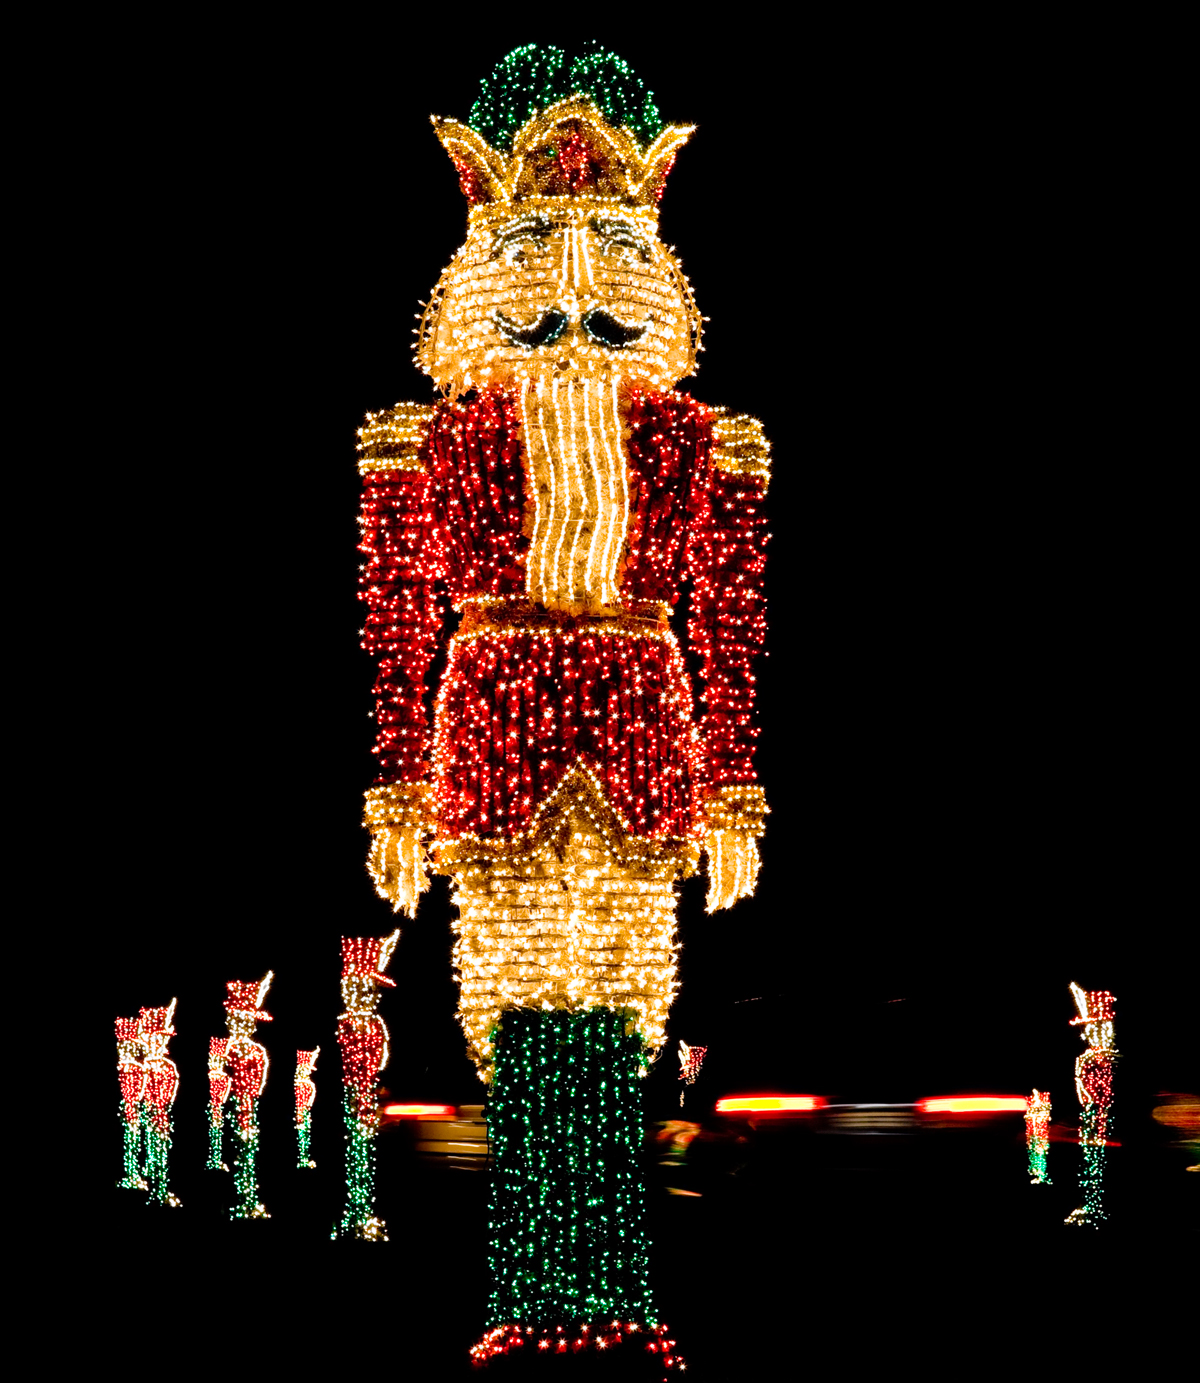 5 atlanta events you won t want to miss november 15 21 - Callaway gardens festival of lights ...